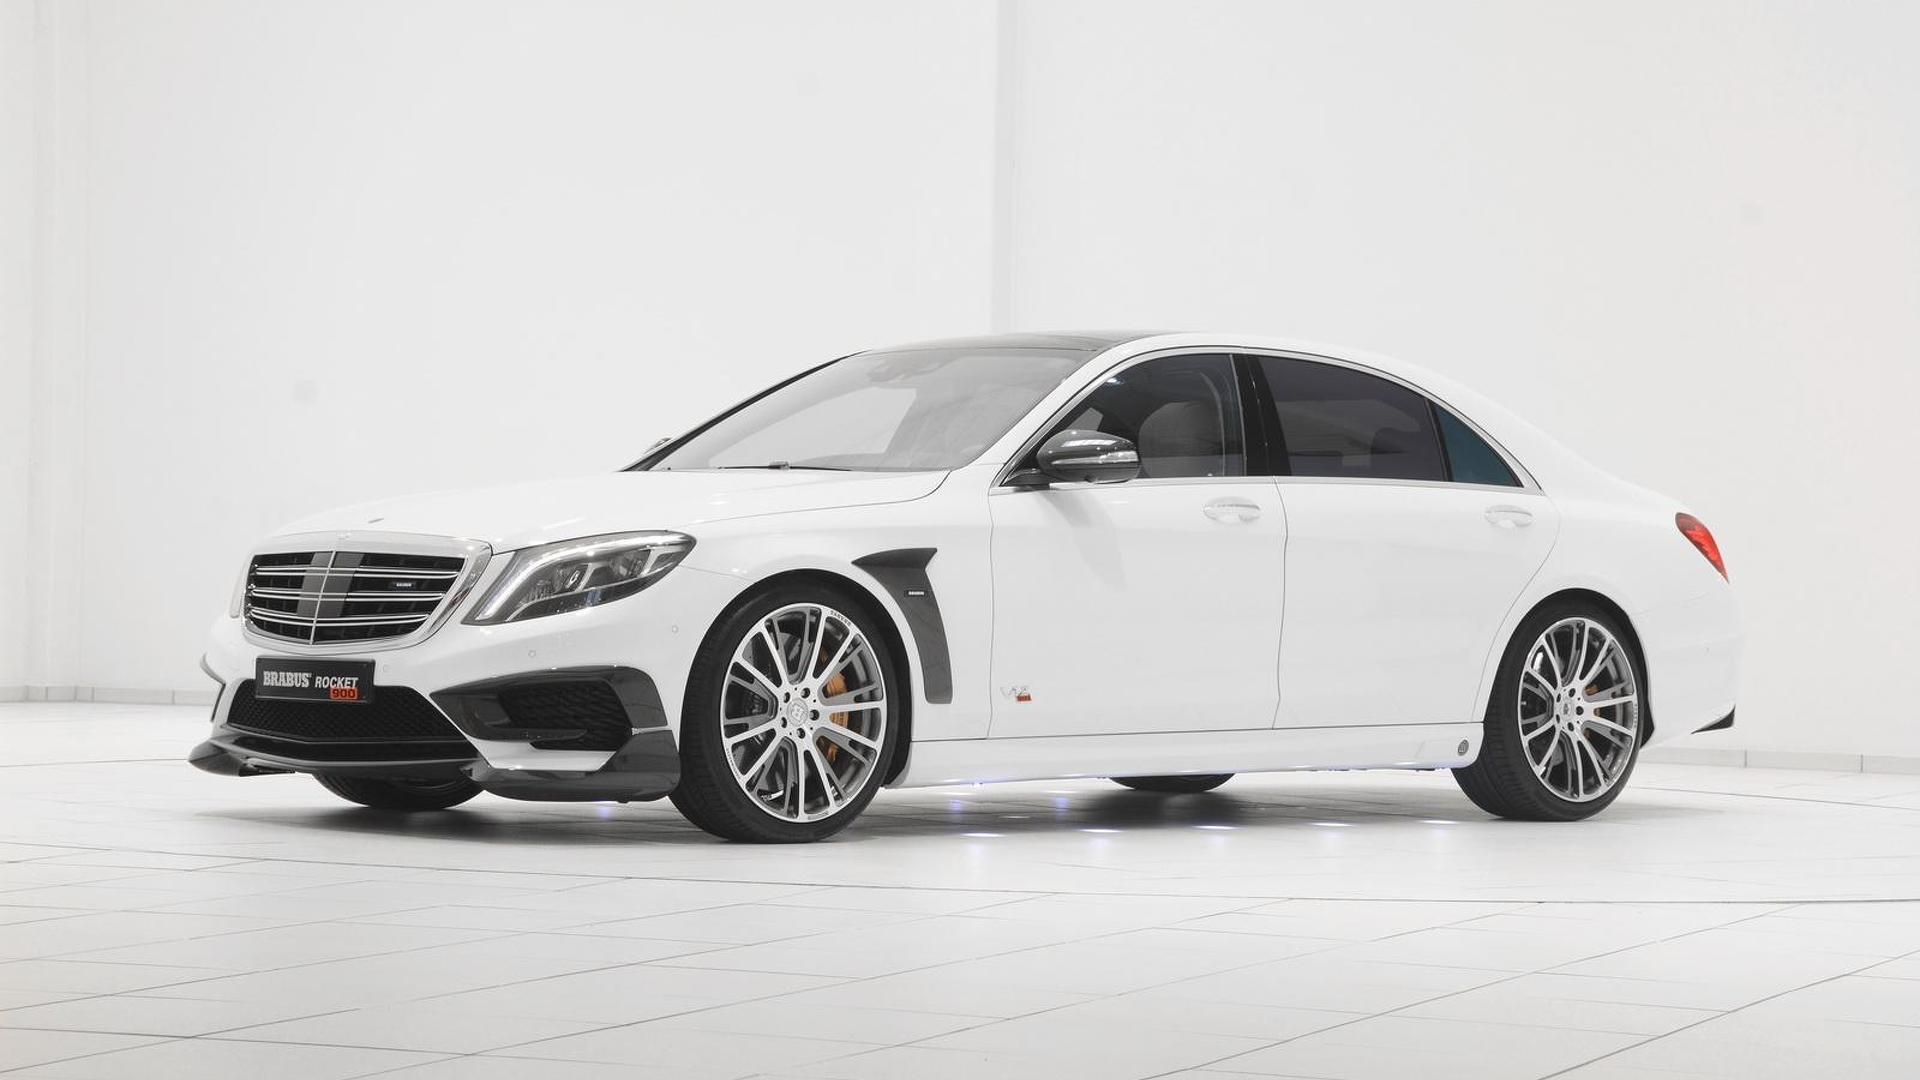 Brabus Rocket 900 Is A Heavily Tuned Mercedes Benz S65 Amg With 1 200 Nm Limited Torque